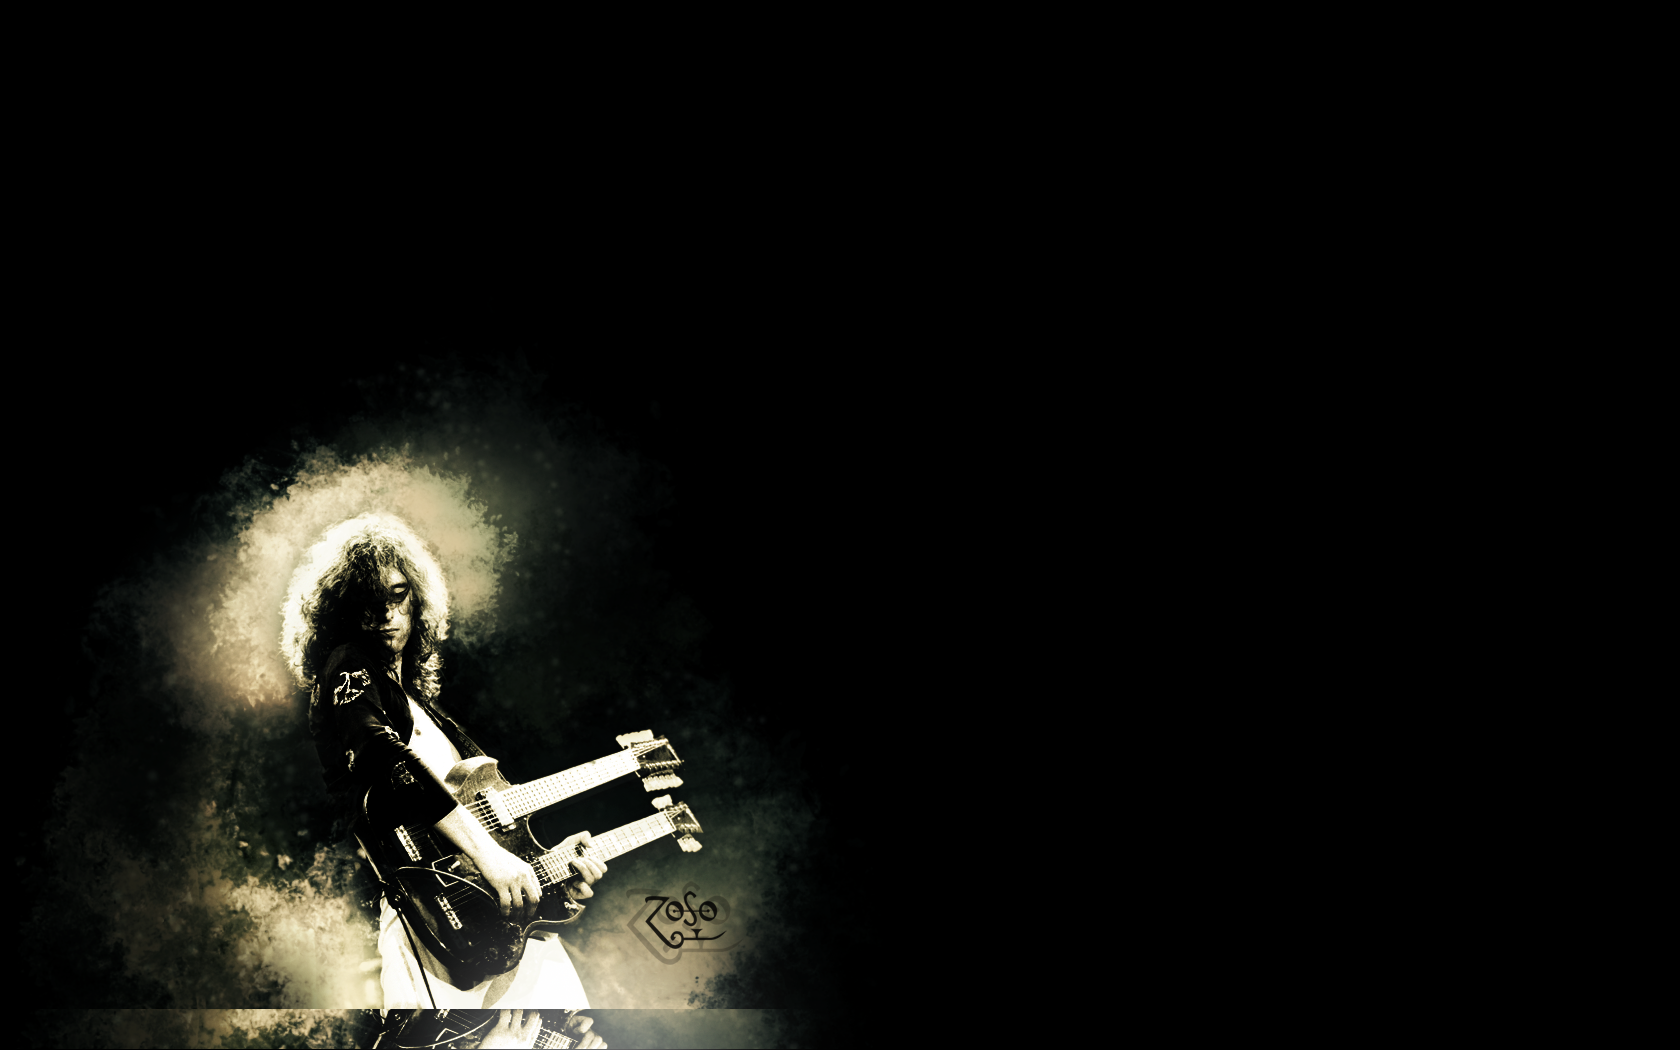 Jimmy Page Lordoflastbench Fan Art Wallpaper Other 1680x1050